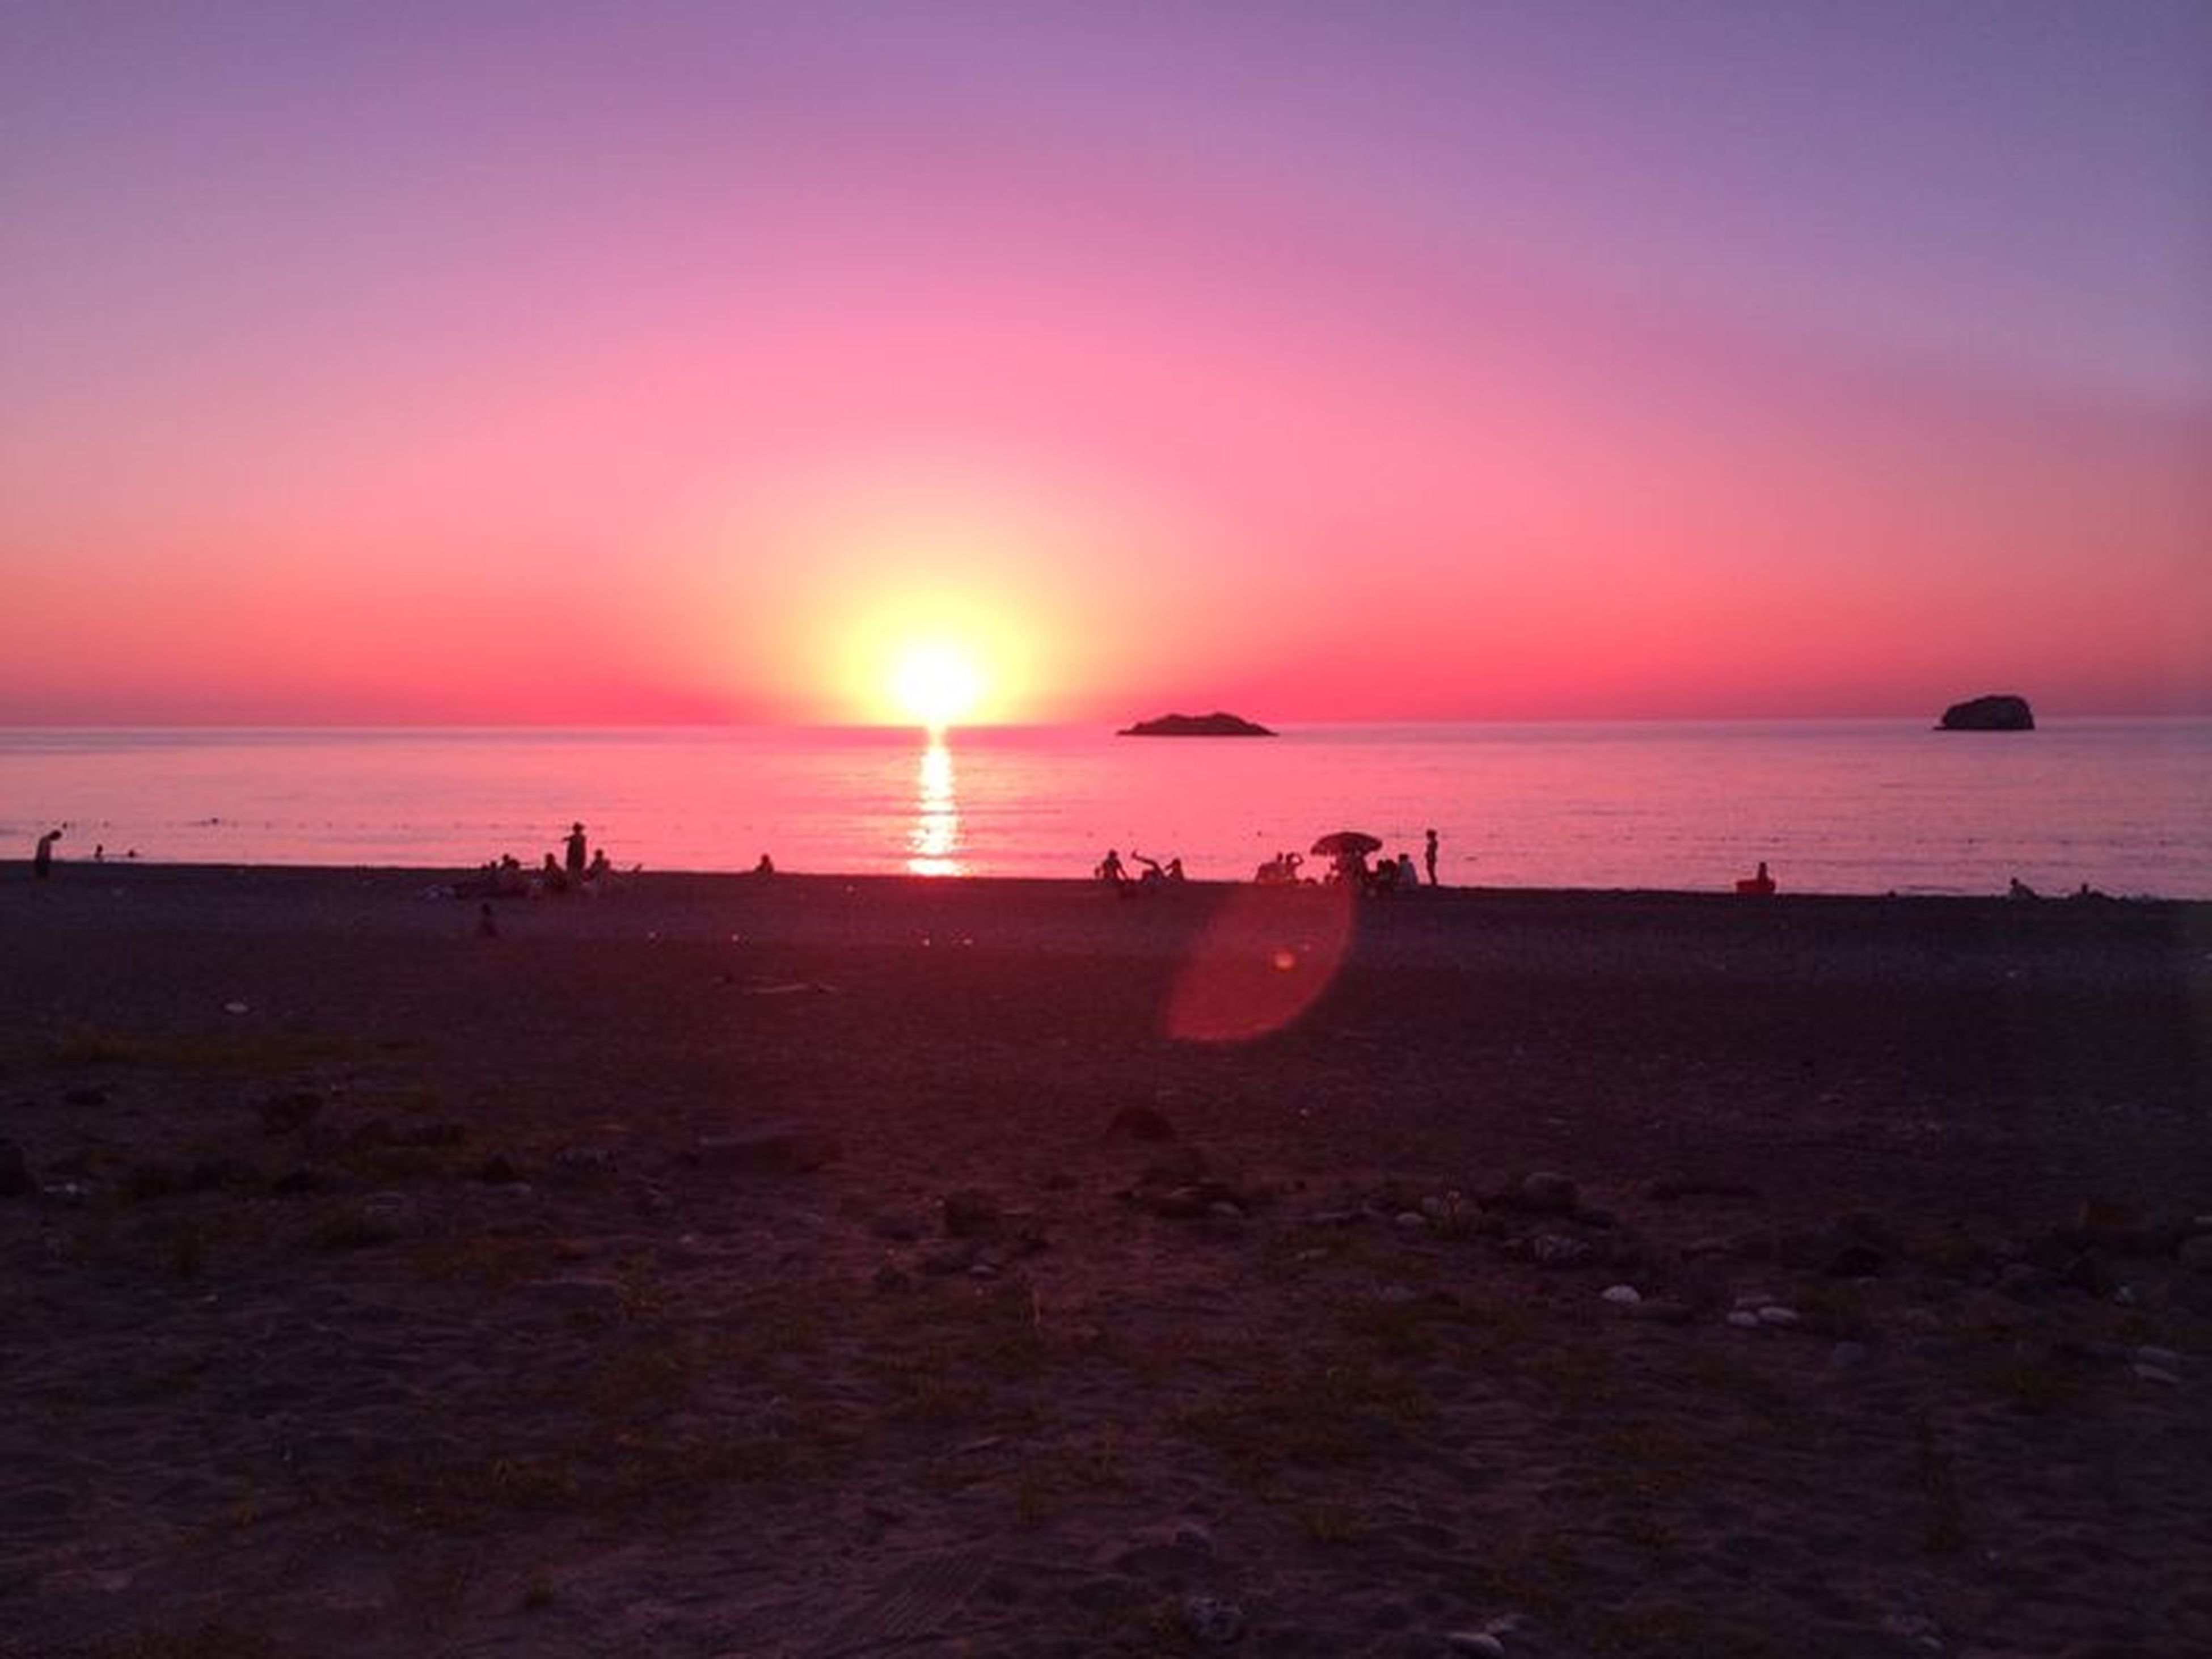 sea, horizon over water, beach, water, sunset, shore, sun, scenics, beauty in nature, tranquil scene, tranquility, sand, sky, nature, vacations, idyllic, orange color, incidental people, sunlight, large group of people